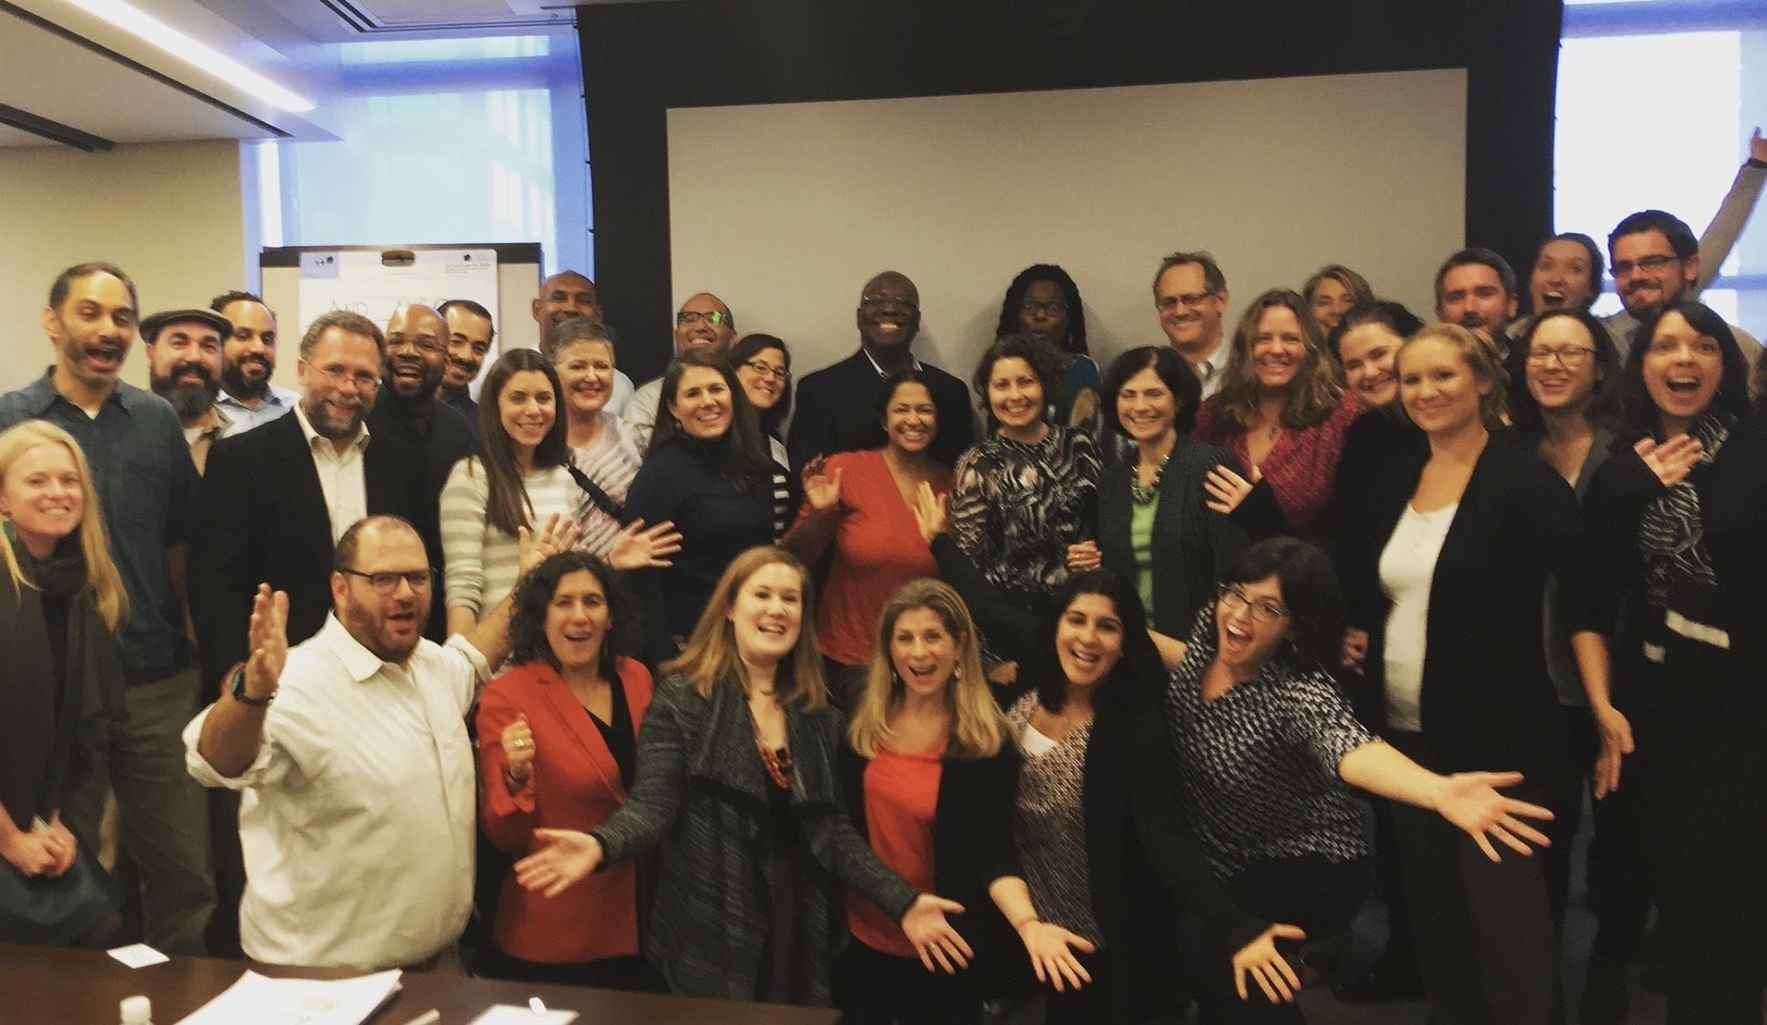 $2,019 for 2019: Advisory Council Members Fuel Fund the People's 2019 Work image